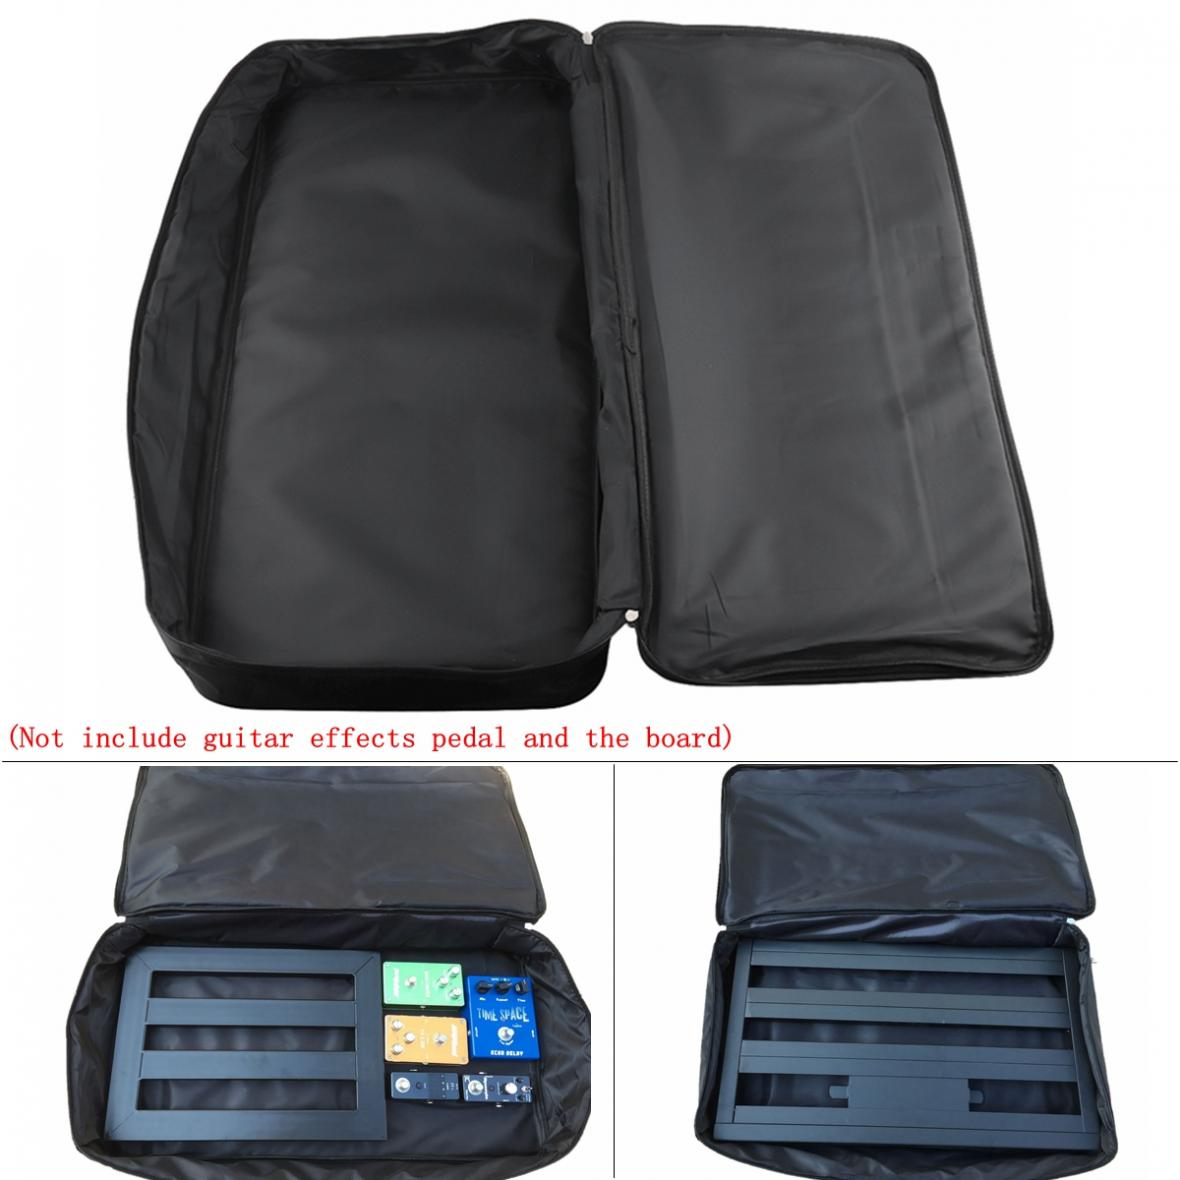 Image 3 - 60*33*10cm Black Universal Portable Guitar Effects Pedal Board Gig Bag Soft Case Big Style  DIY Guitar Pedalboard-in Guitar Parts & Accessories from Sports & Entertainment